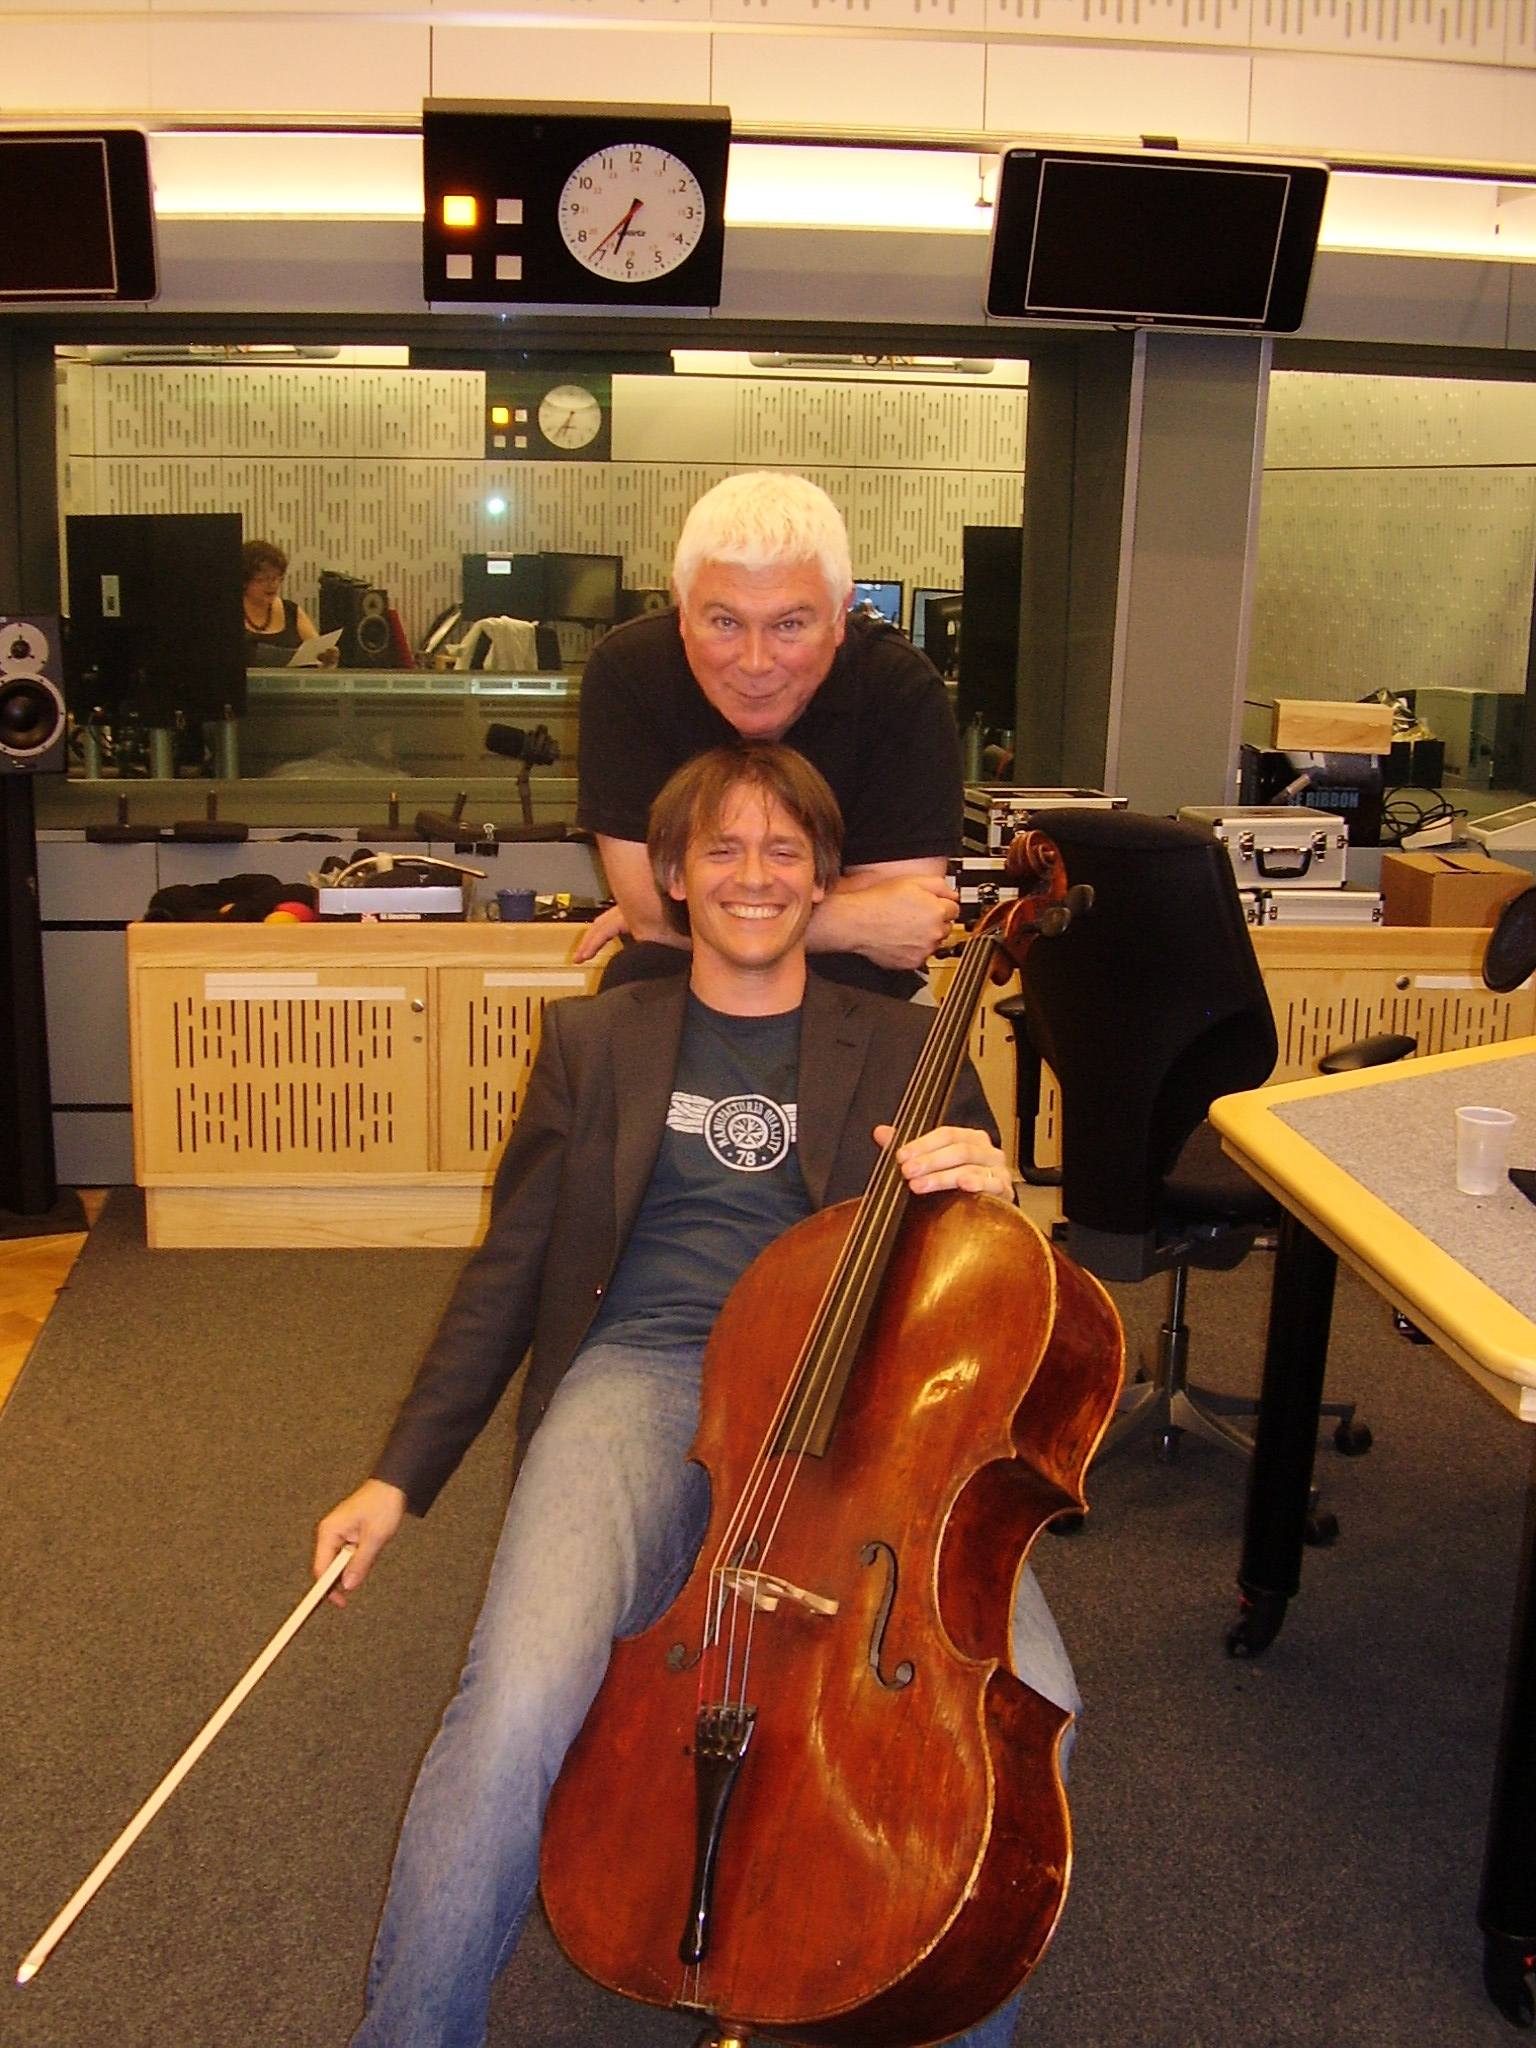 With Sean Rafferty at Intune